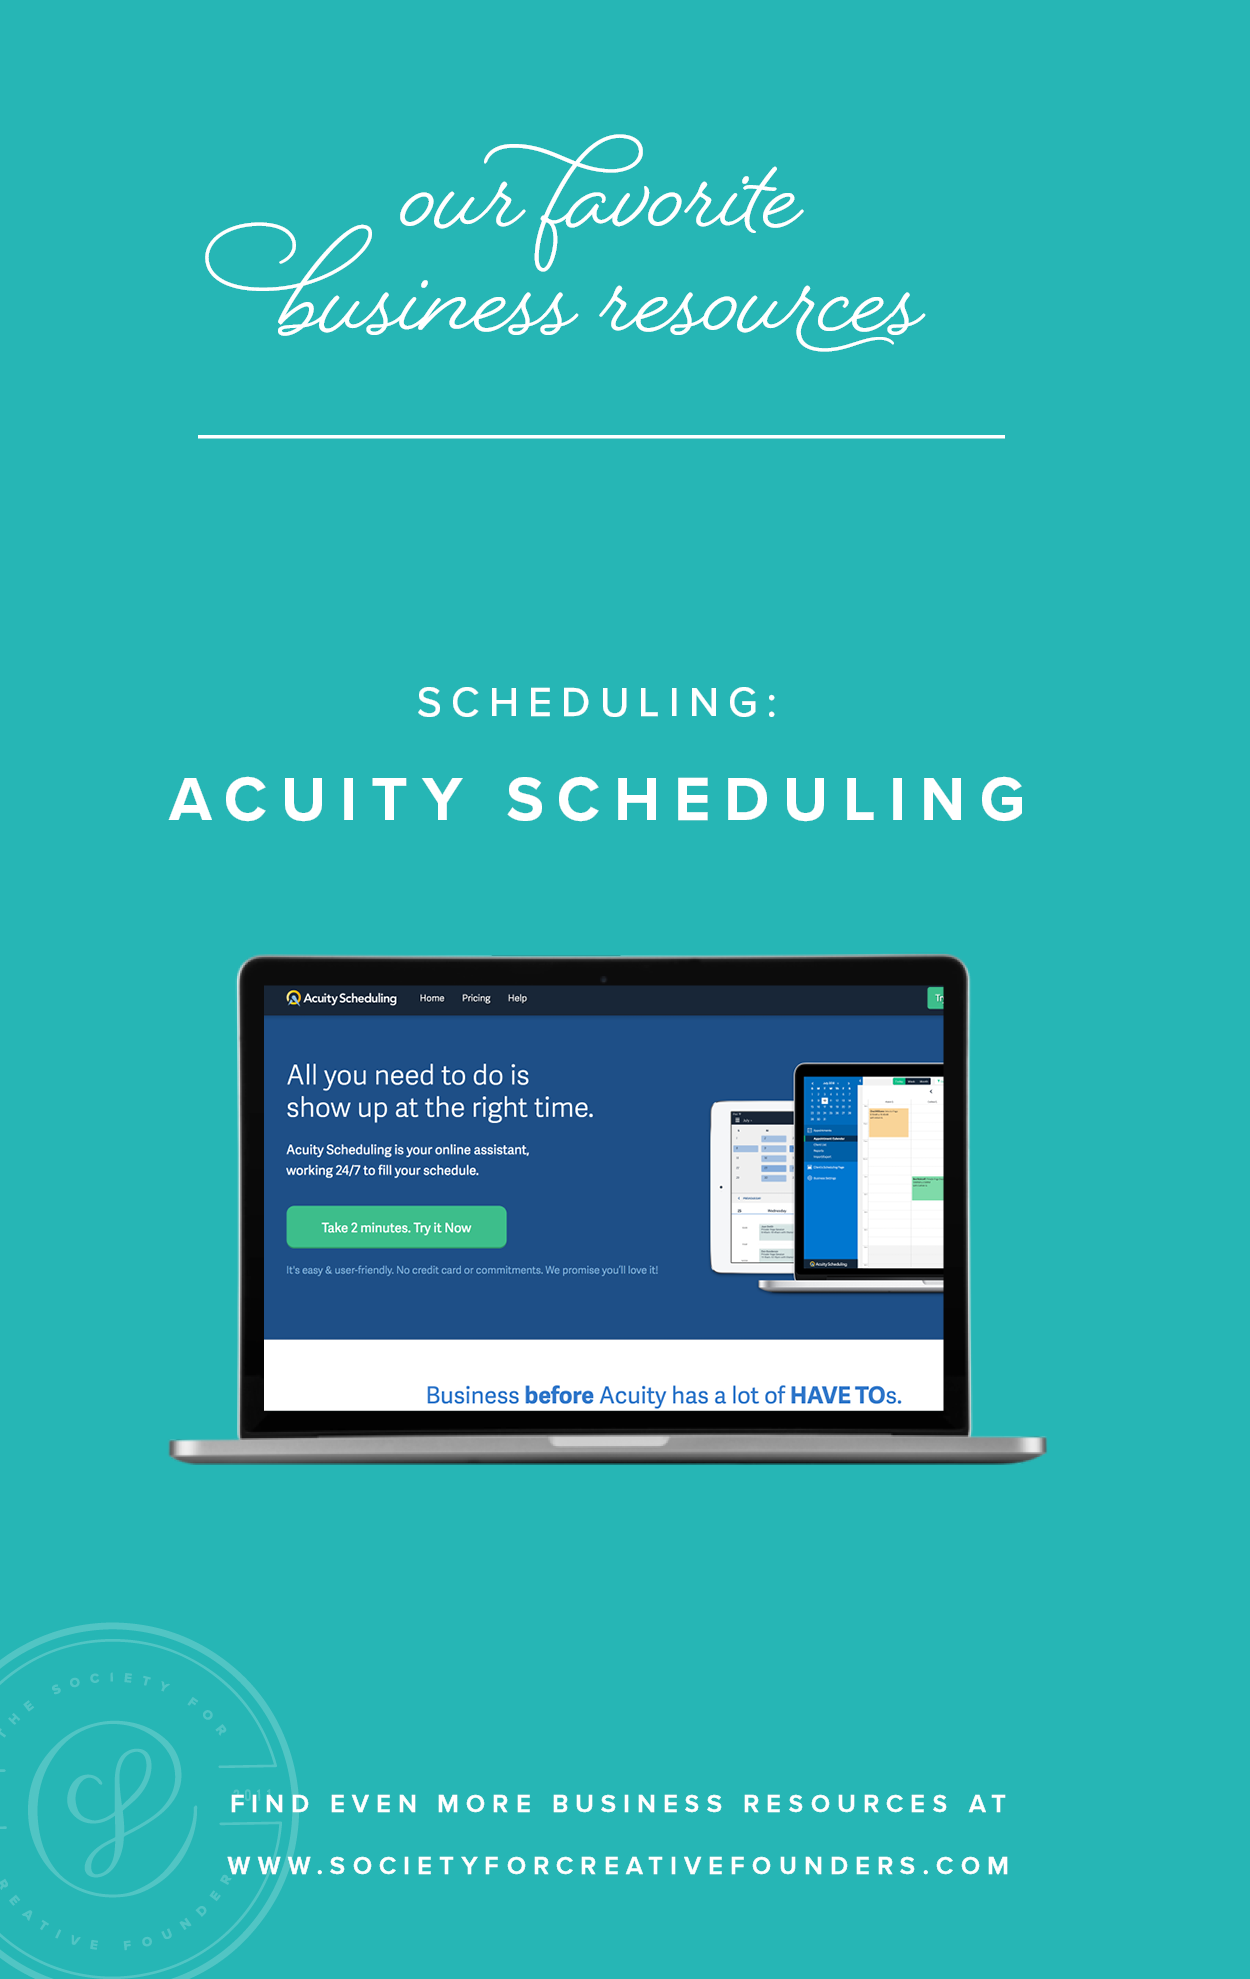 Appointment Scheduling with Acuity - Favorite Business Resources from Society for Creative Founders